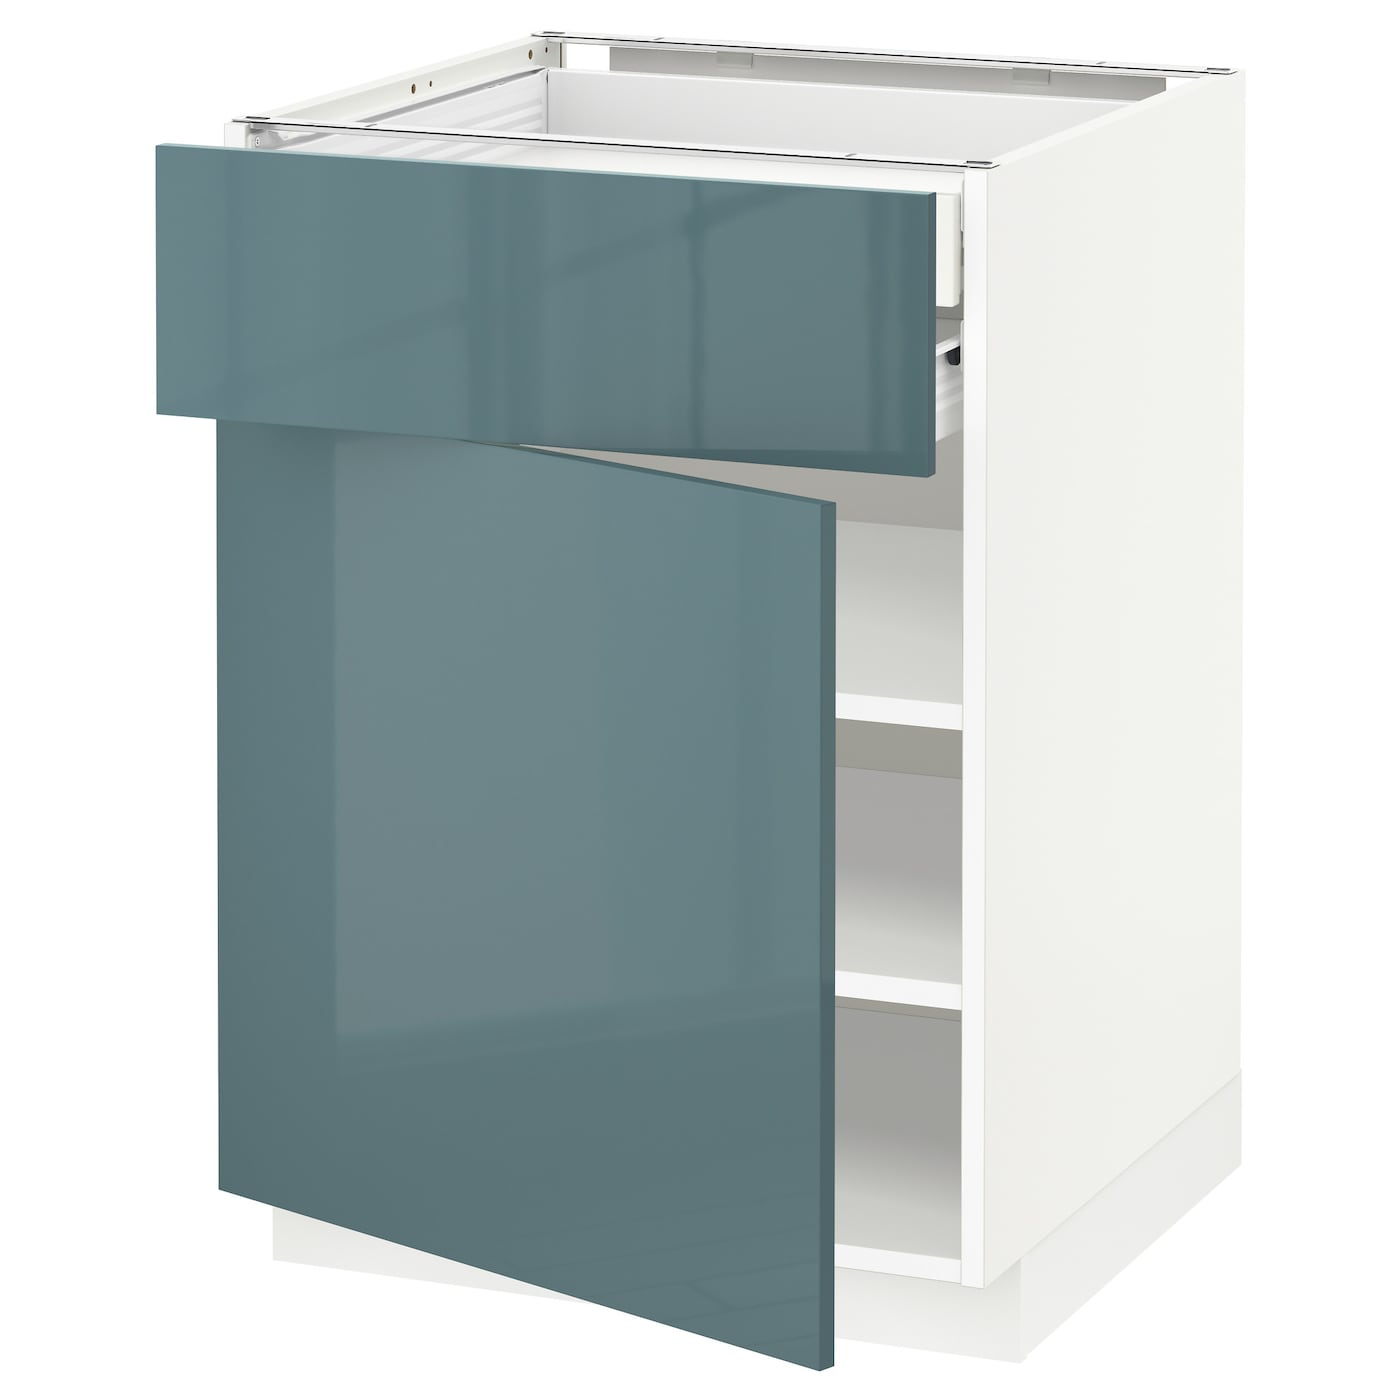 IKEA METOD base cab dr/front/shlvs/2 low drwrs Sturdy frame construction, 18 mm thick.